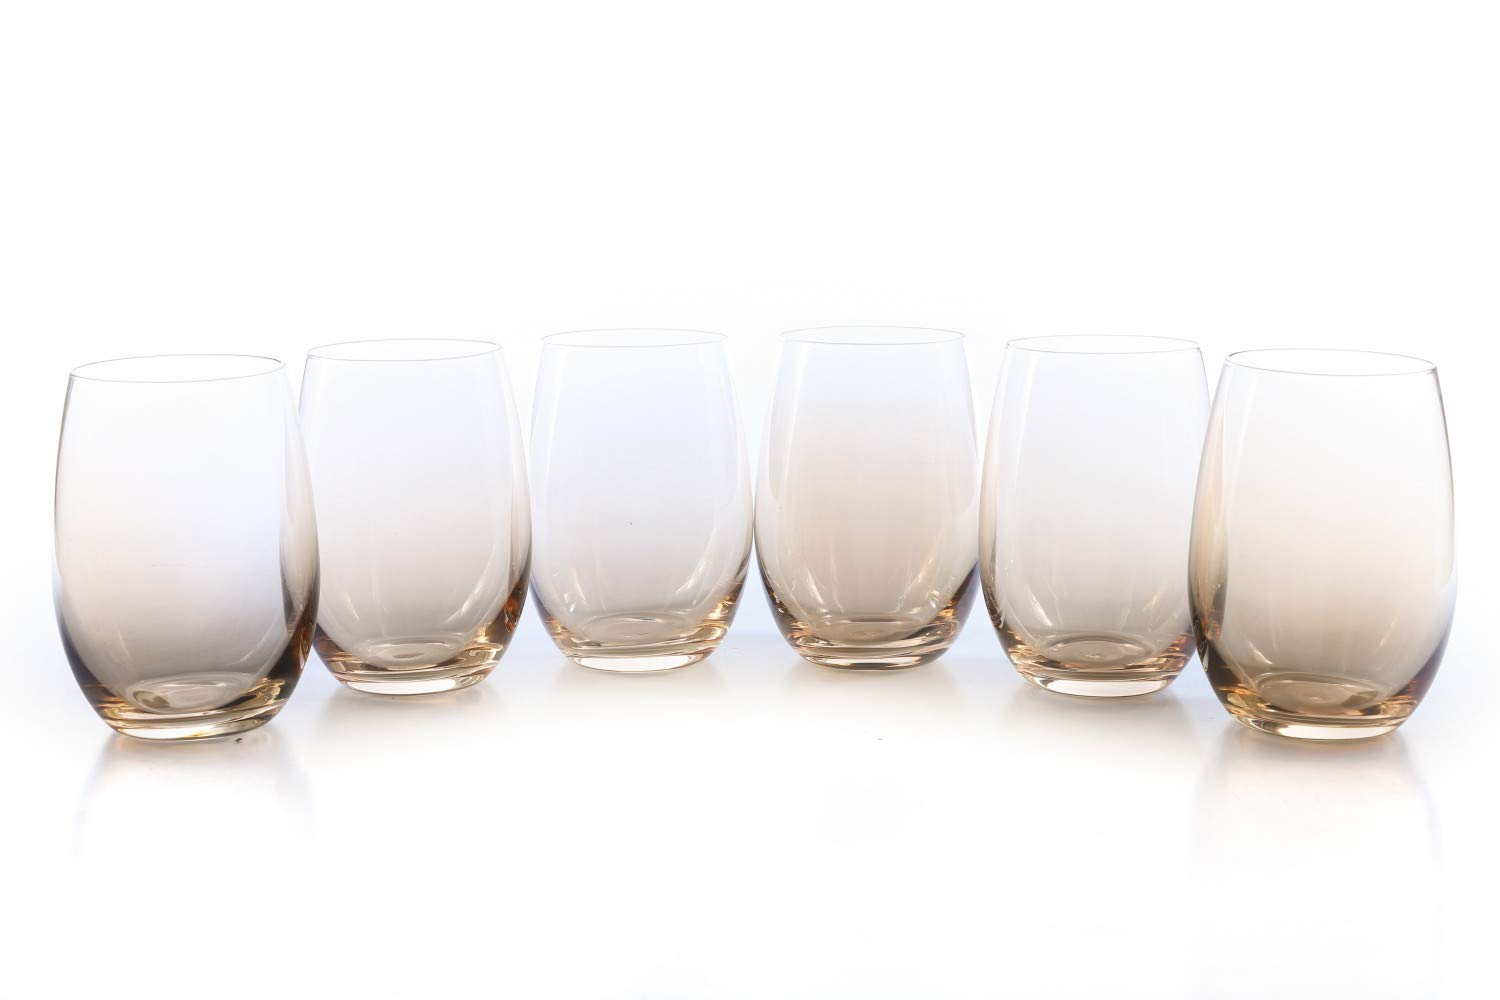 MIUSITE Essential Wine Water Drinking Highball Glasses Set of 8-500ml(17.6oz)